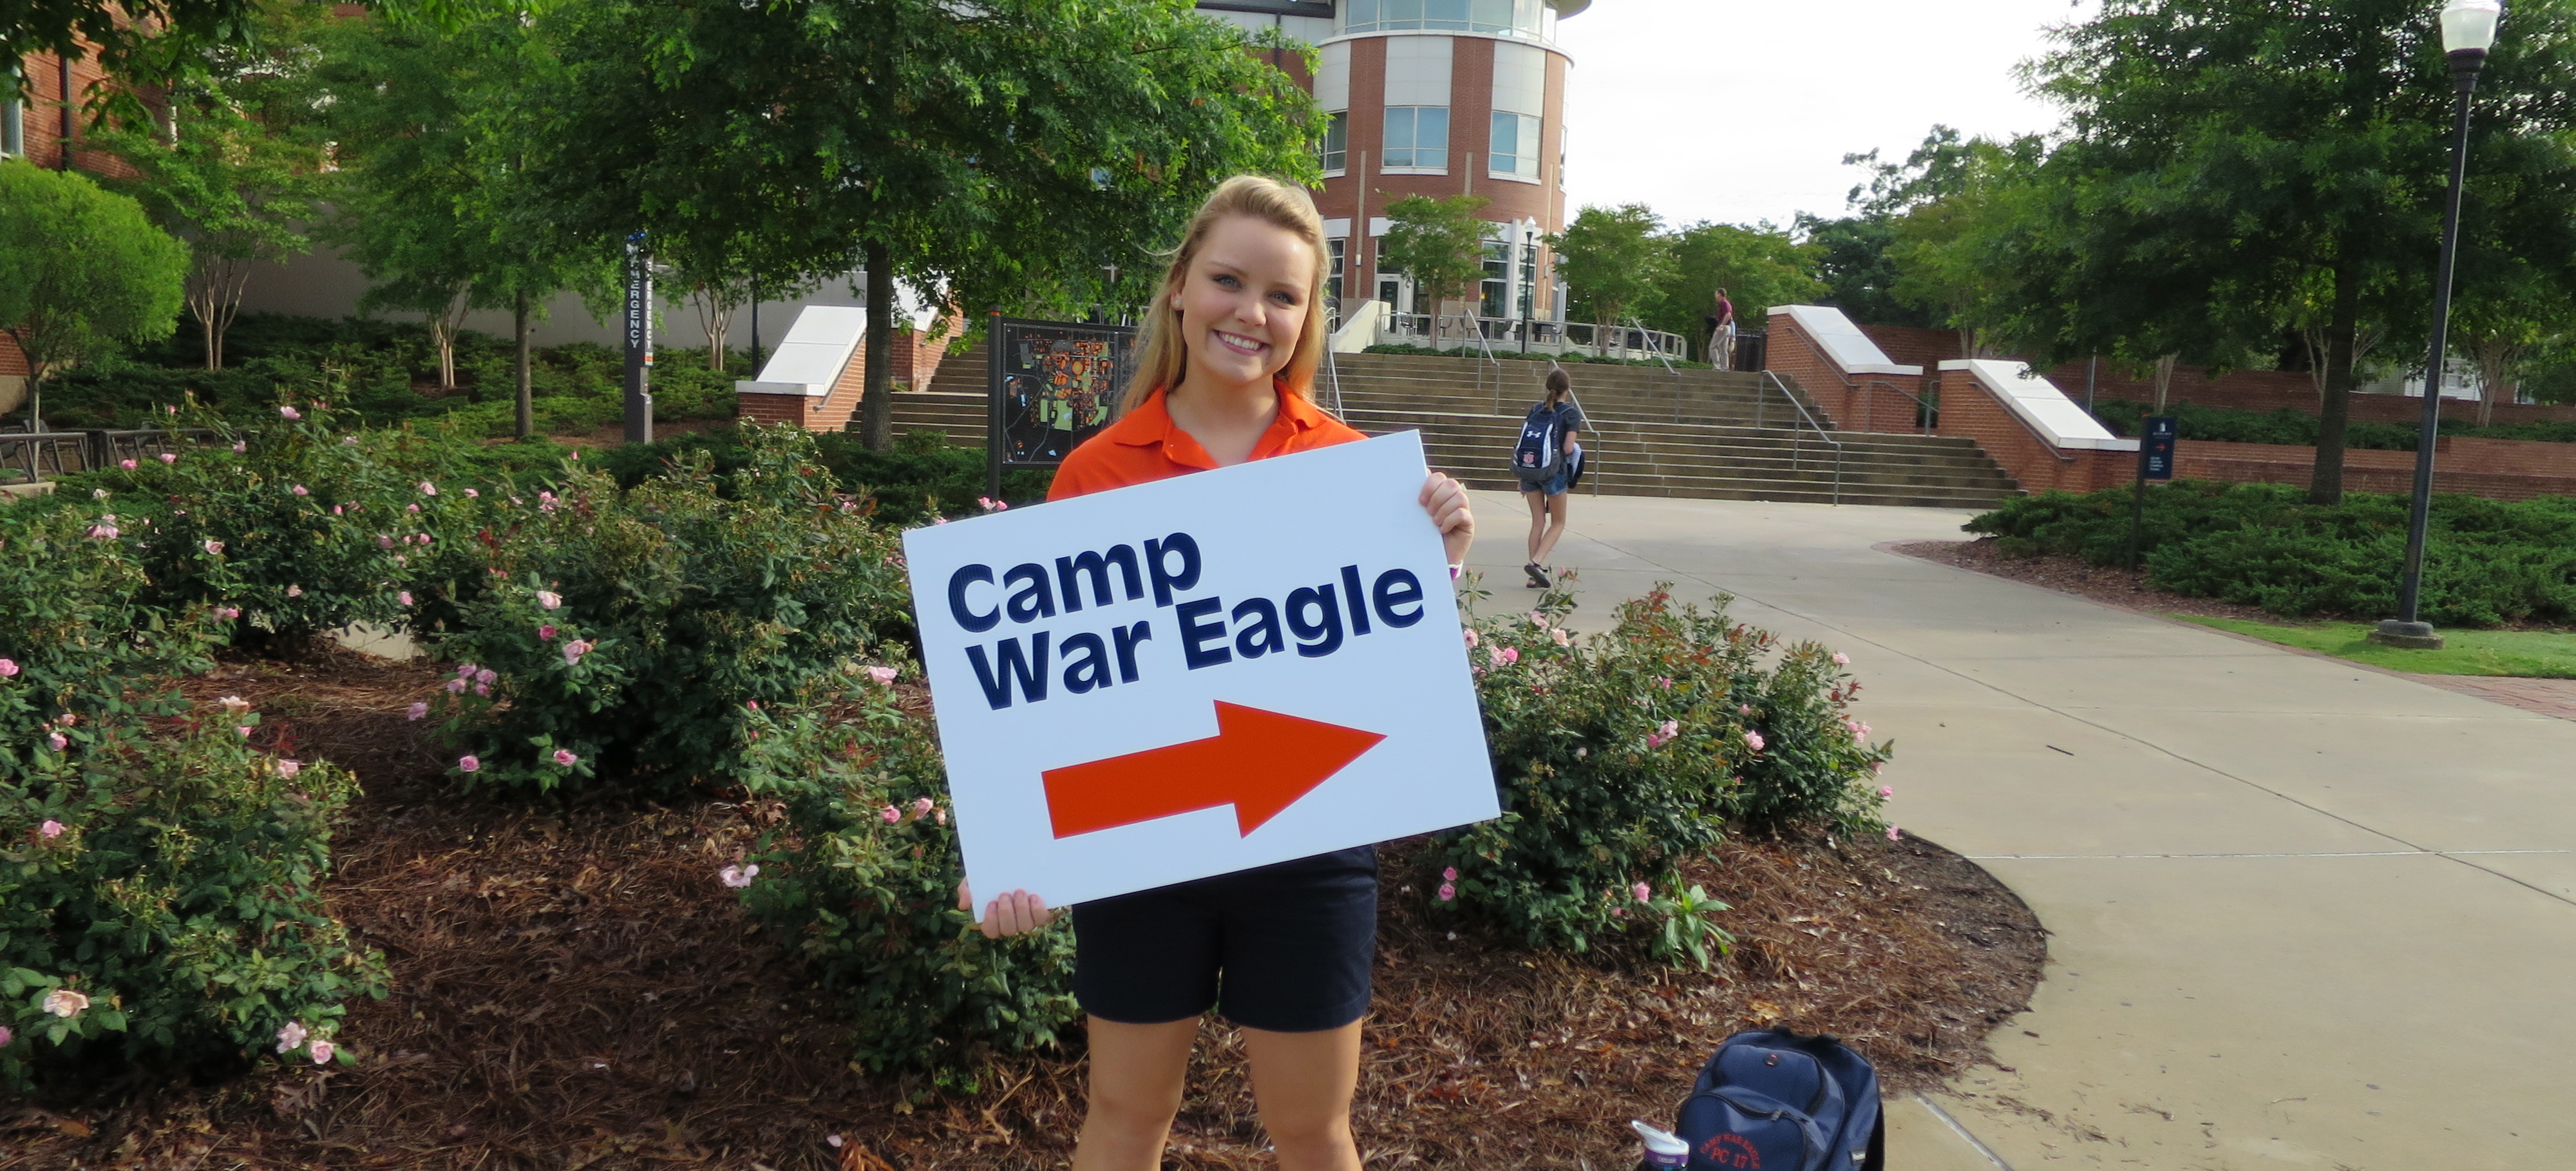 Camp War Eagle Counselor holding sign